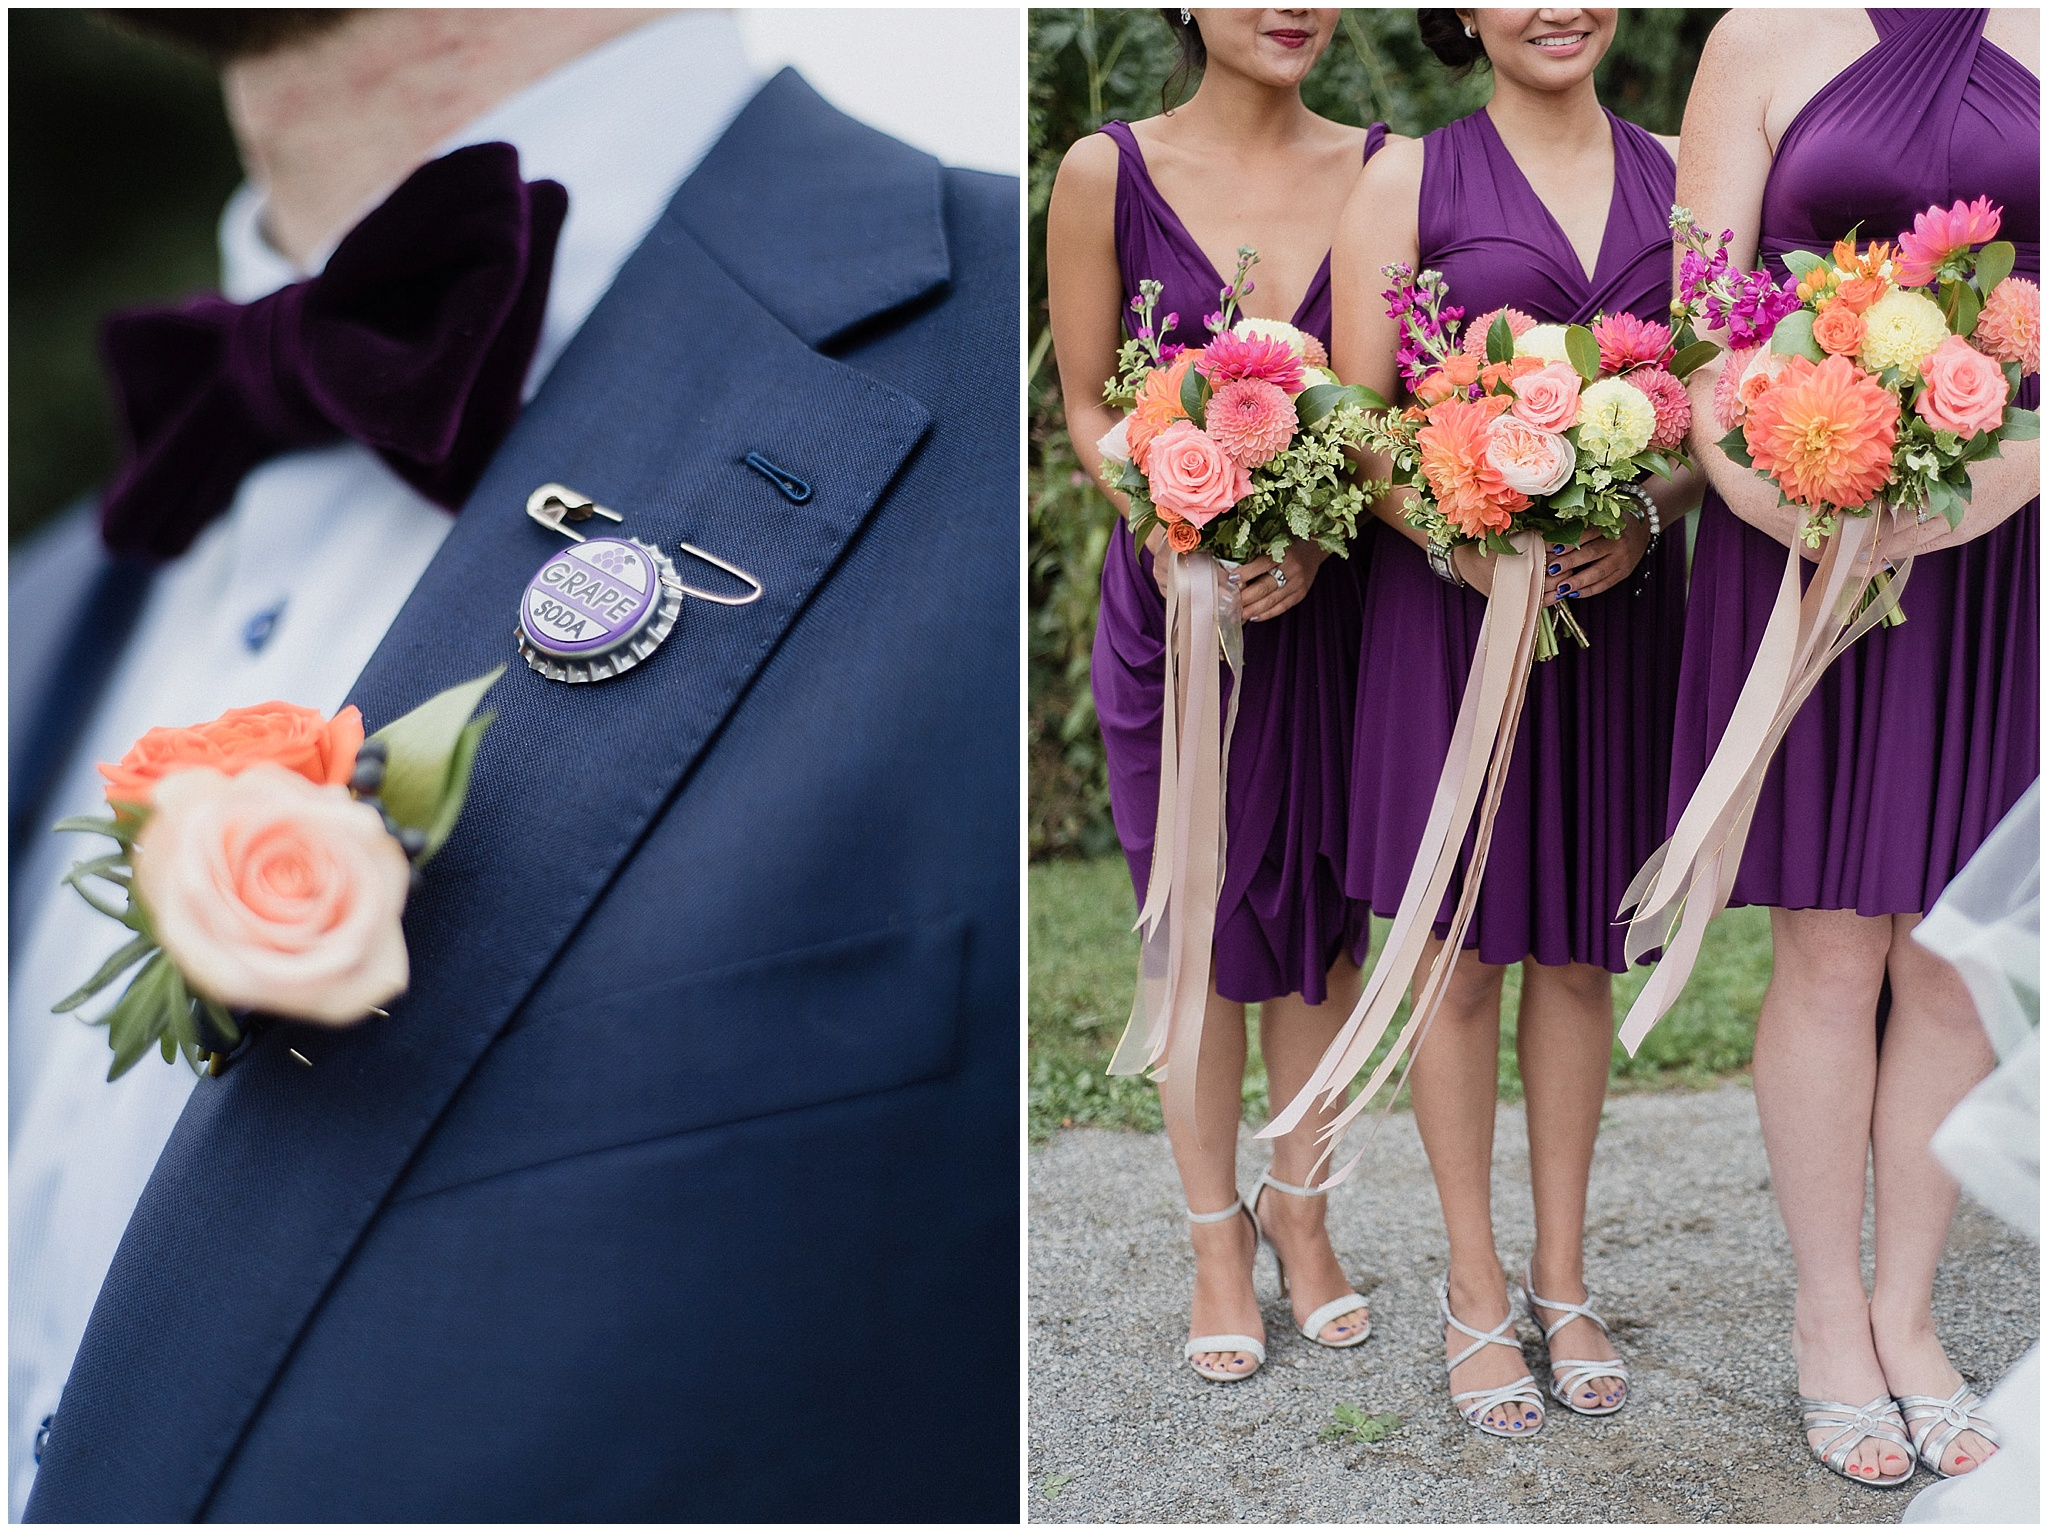 Centennial Park Wedding Portraits photographed by Jenn Kavanagh Photography